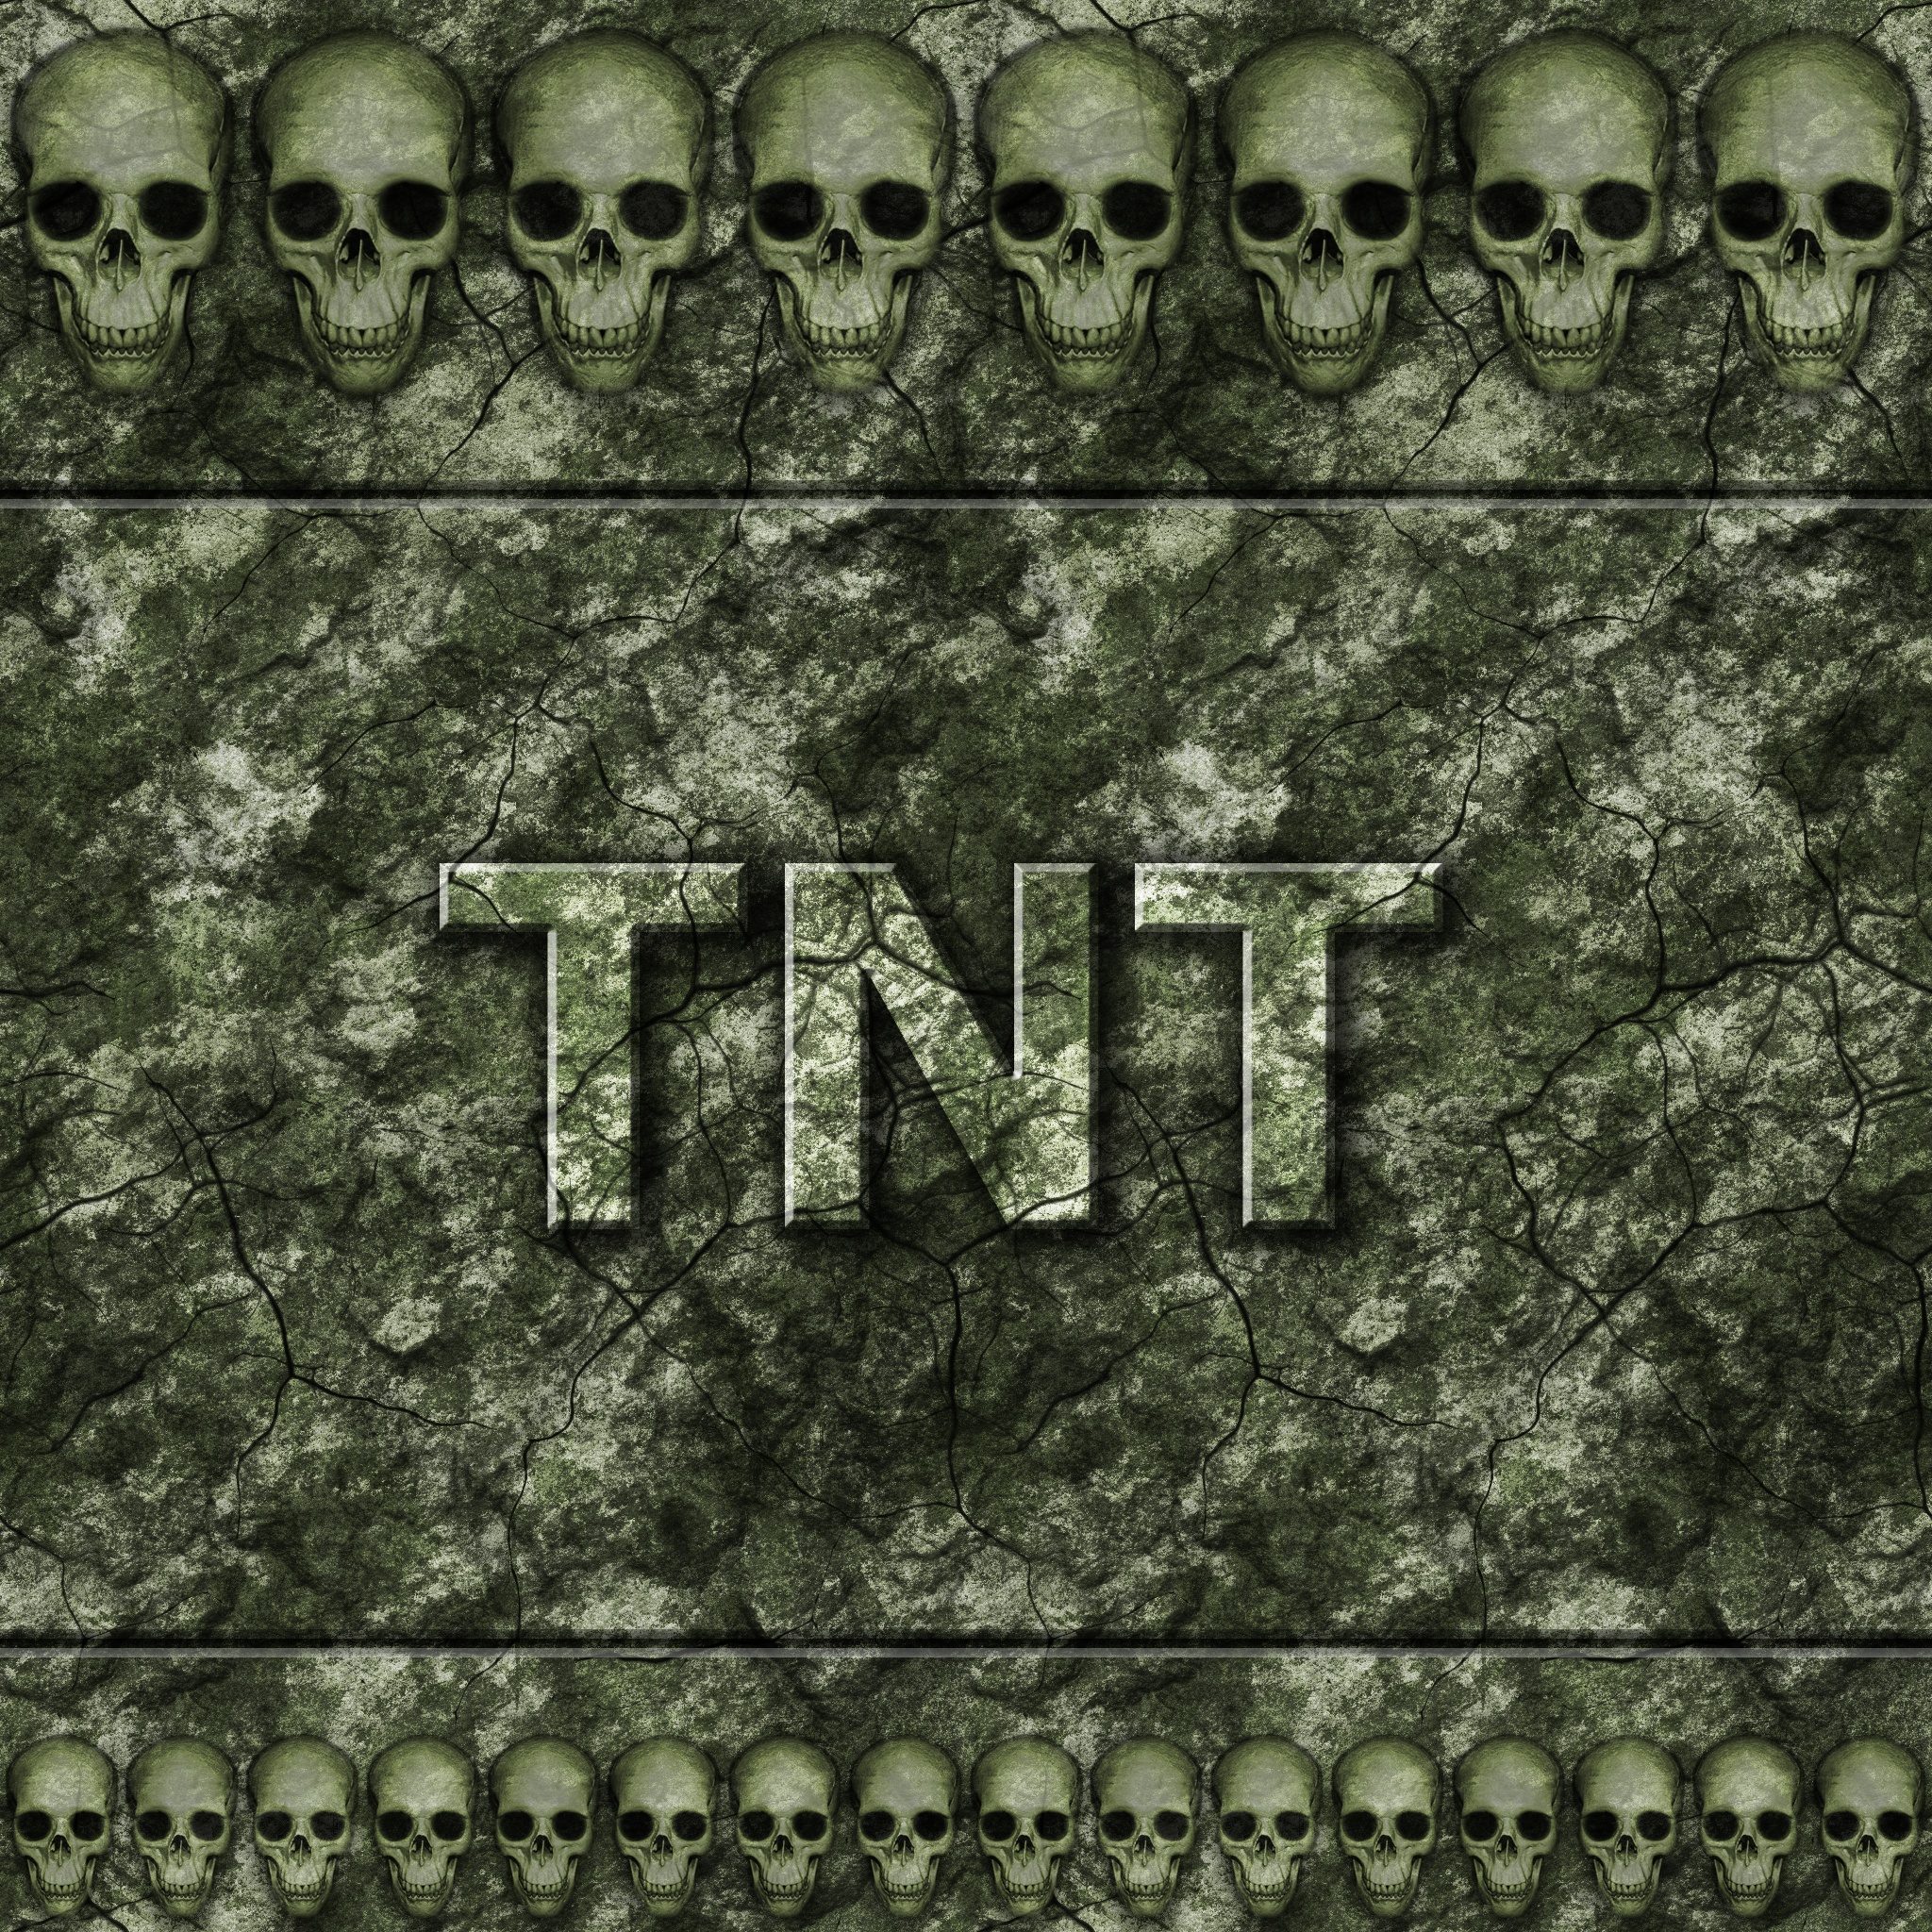 Green Stone Wall with Skulls withTeam TNT branding by Hoover1979